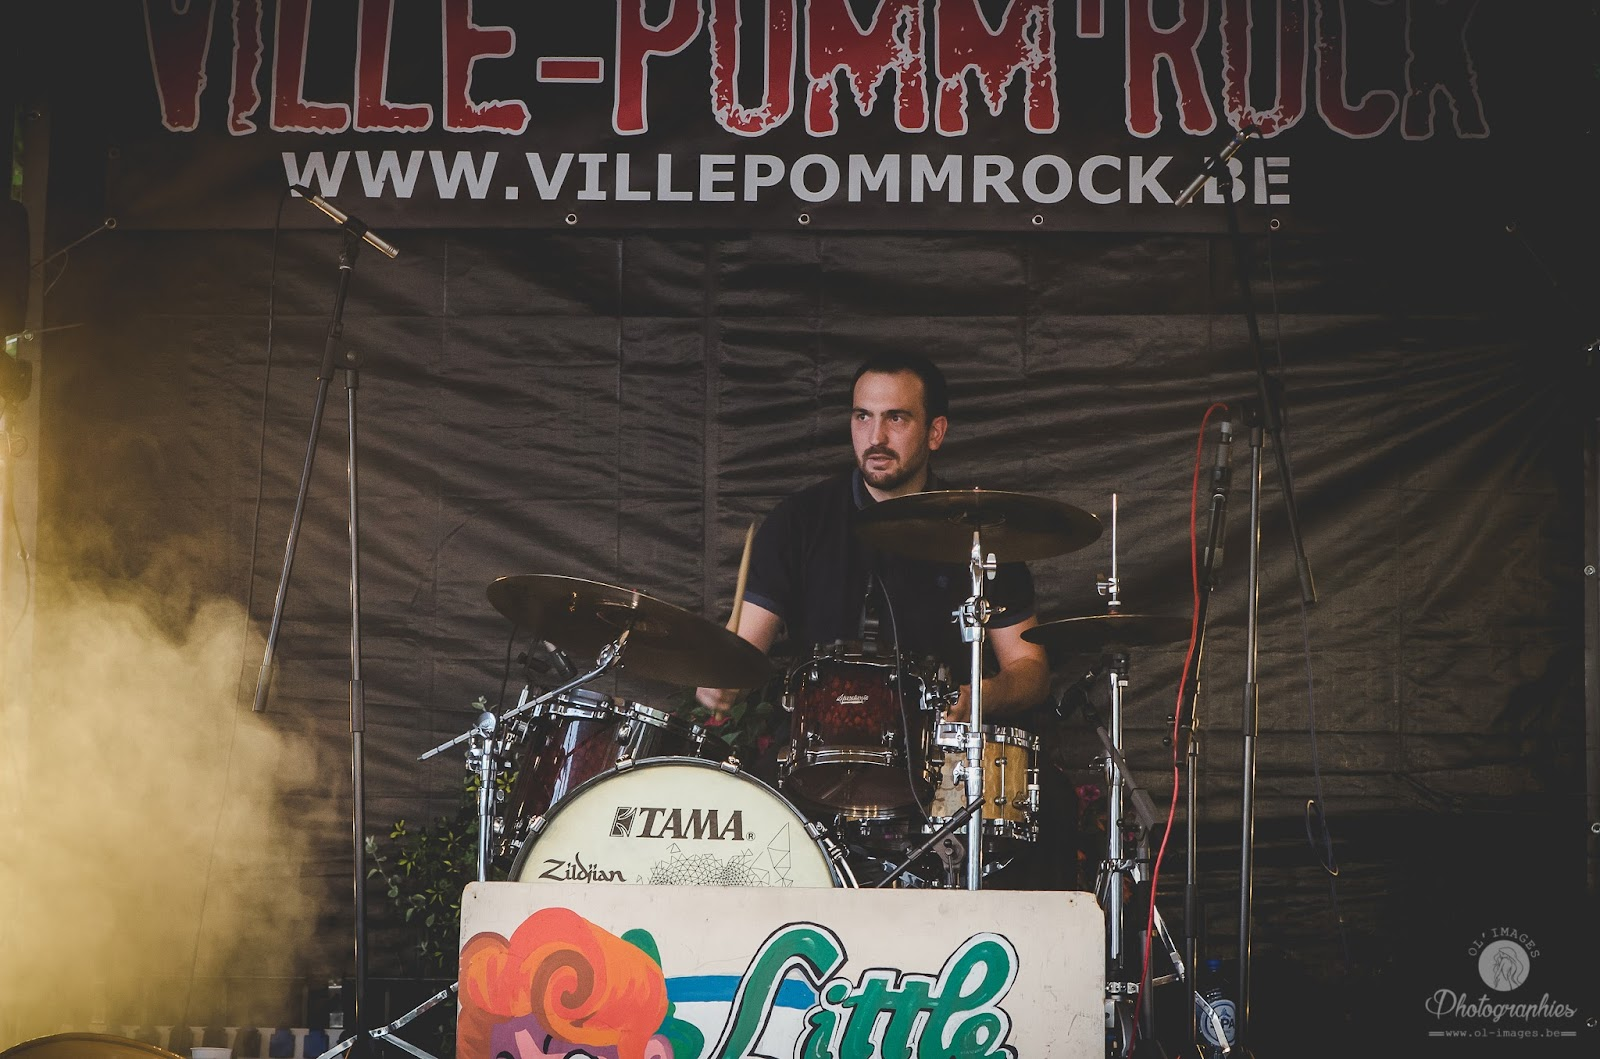 VillePomRock2017_26082017_OL-Images.be--52.jpg